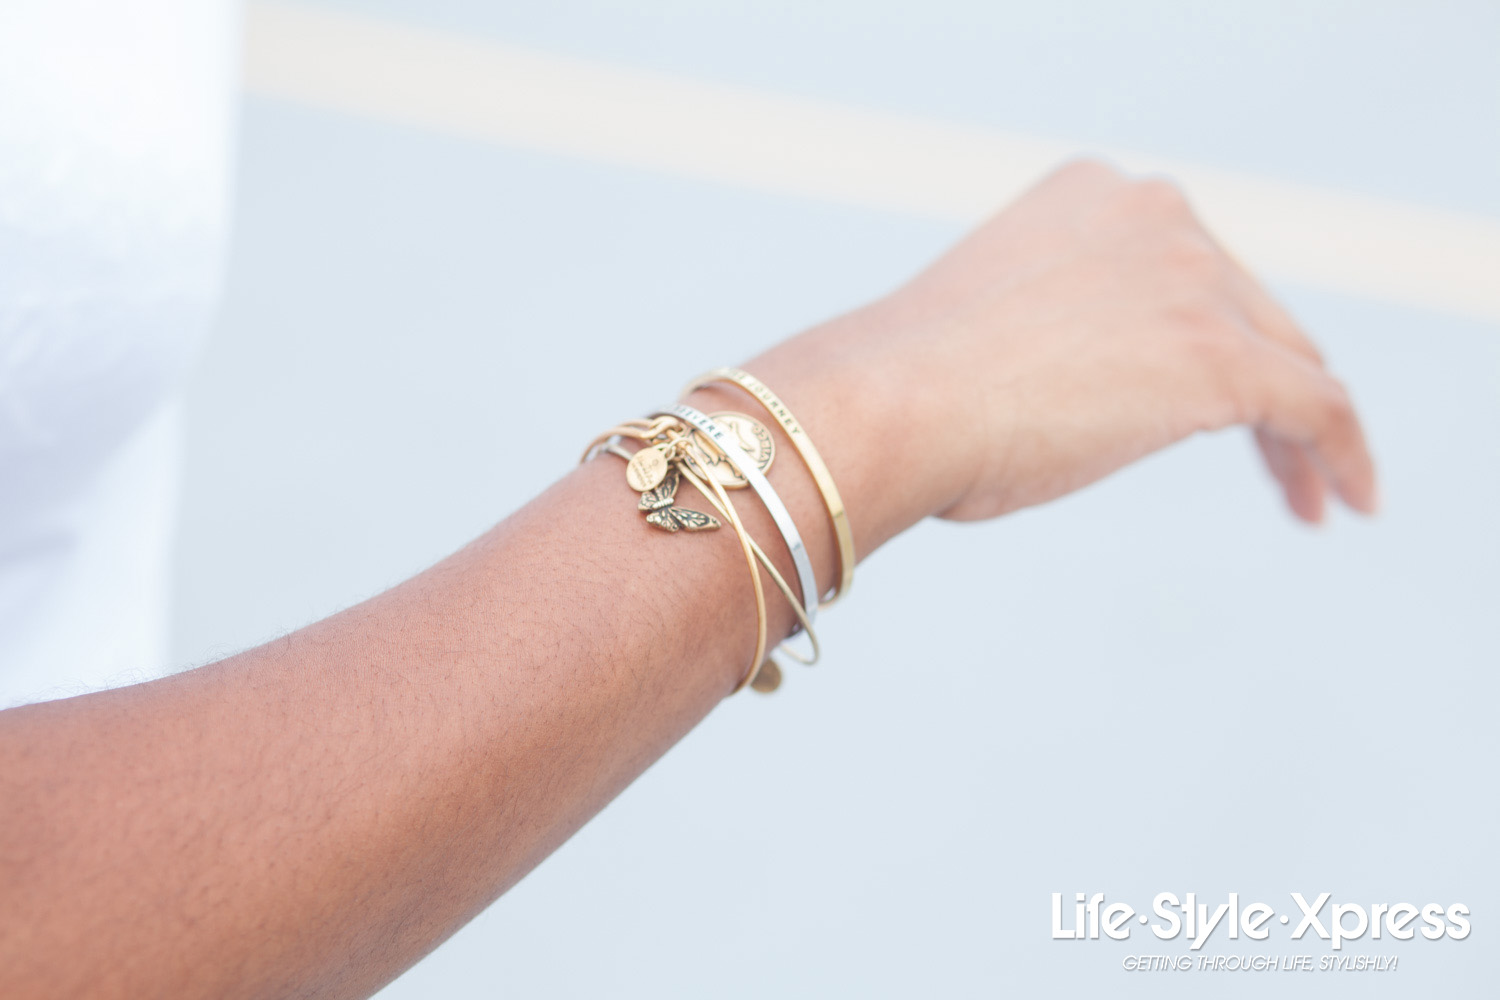 Life Style Xpress, Motivational Tips, Alex and Ani, Mantra Band